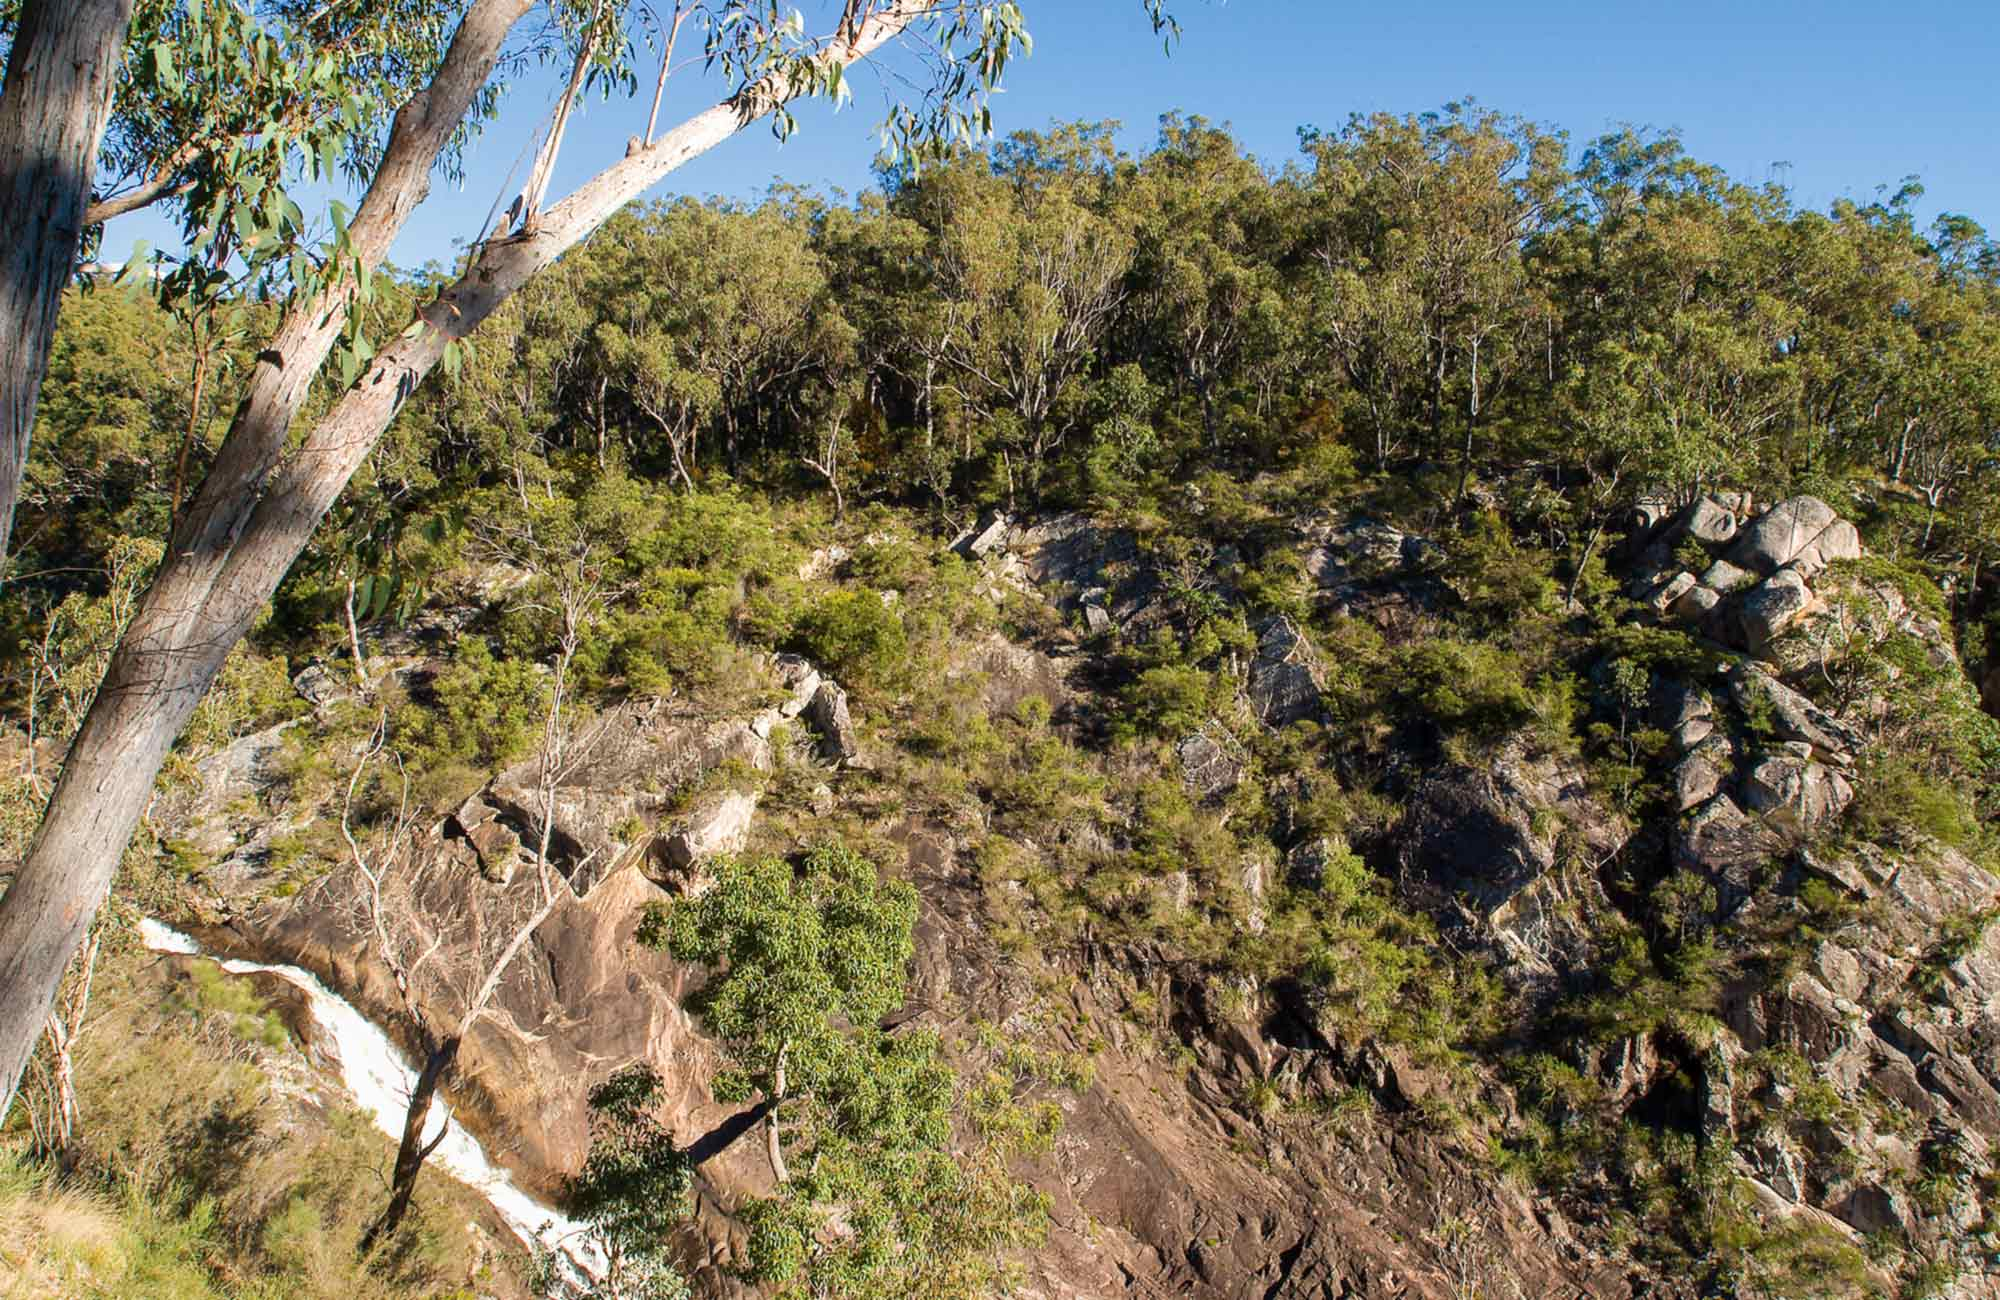 Boonoo Boonoo falls picnic area, Boonoo Boonoo National Park. Photo: David Young